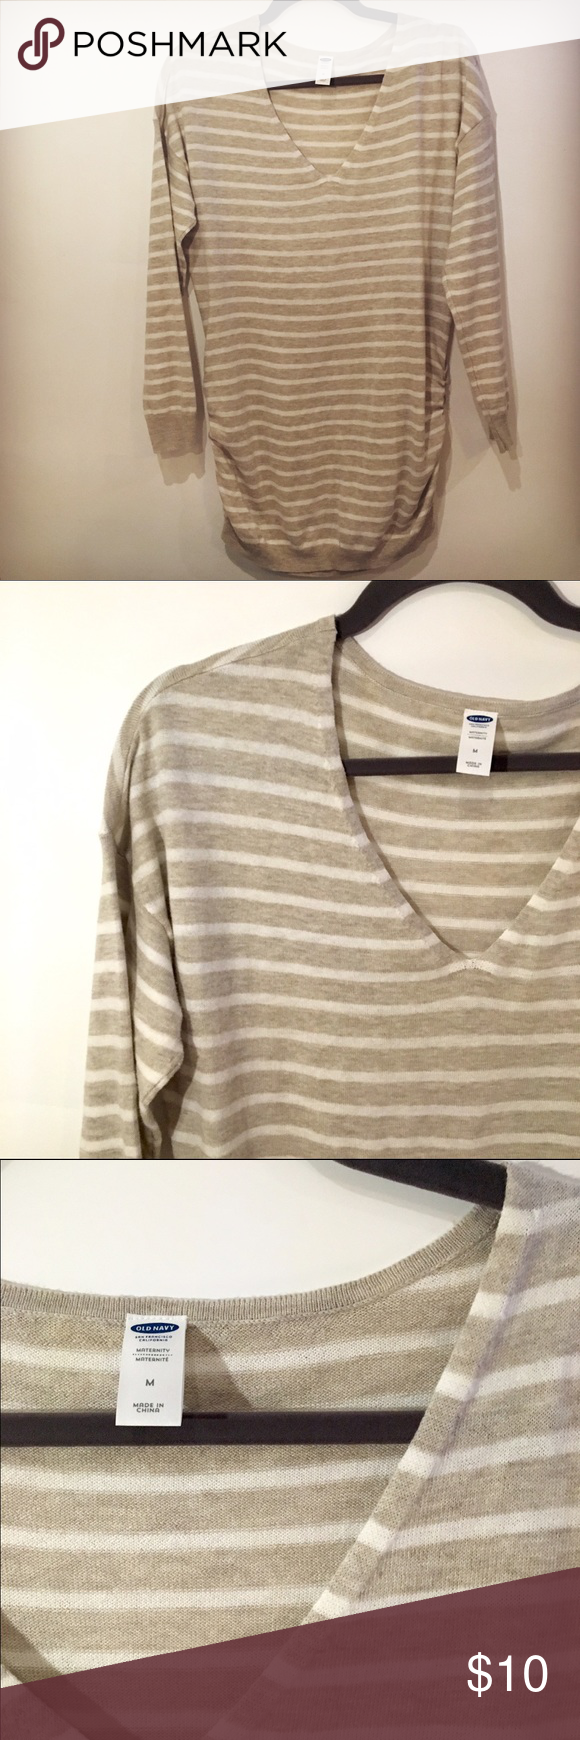 Old Navy Maternity V Neck Neutral Striped Sweater | Cream white